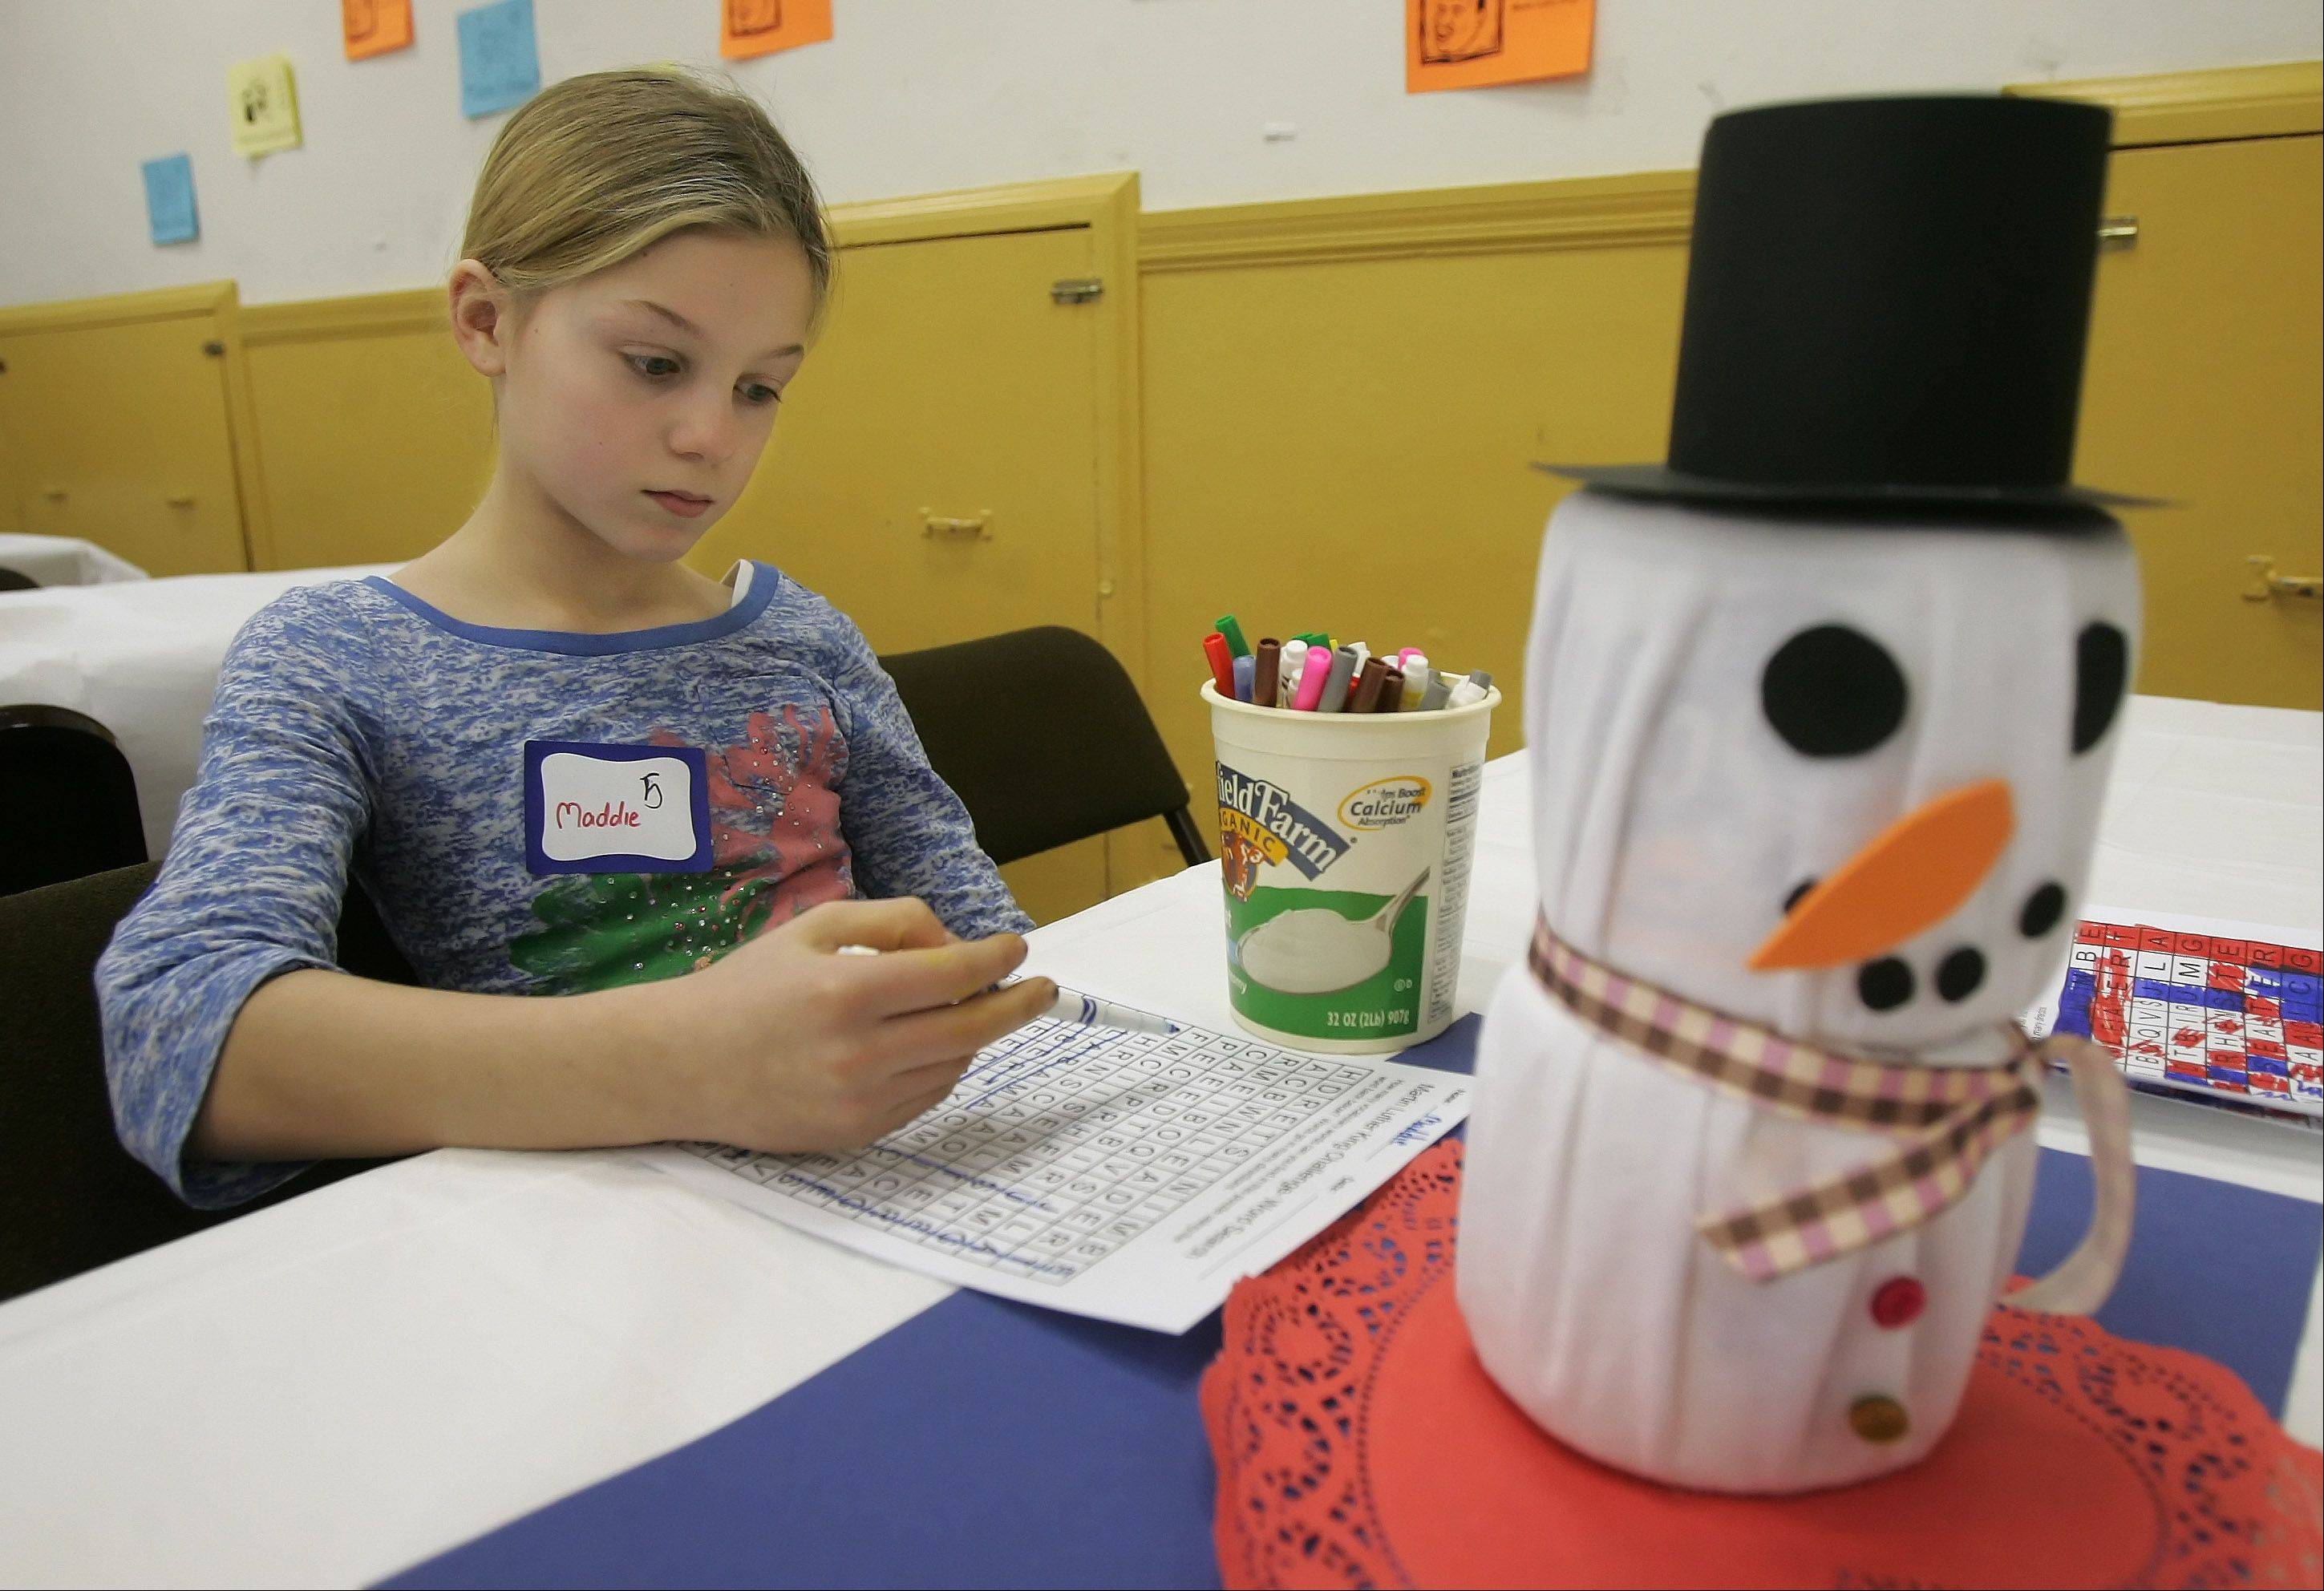 Maddie Kuntz, 10, of Libertyville, works on a word game based on Martin Luther King, Jr. during the Hearts the Same program Monday at the First Presbyterian Church of Libertyville.